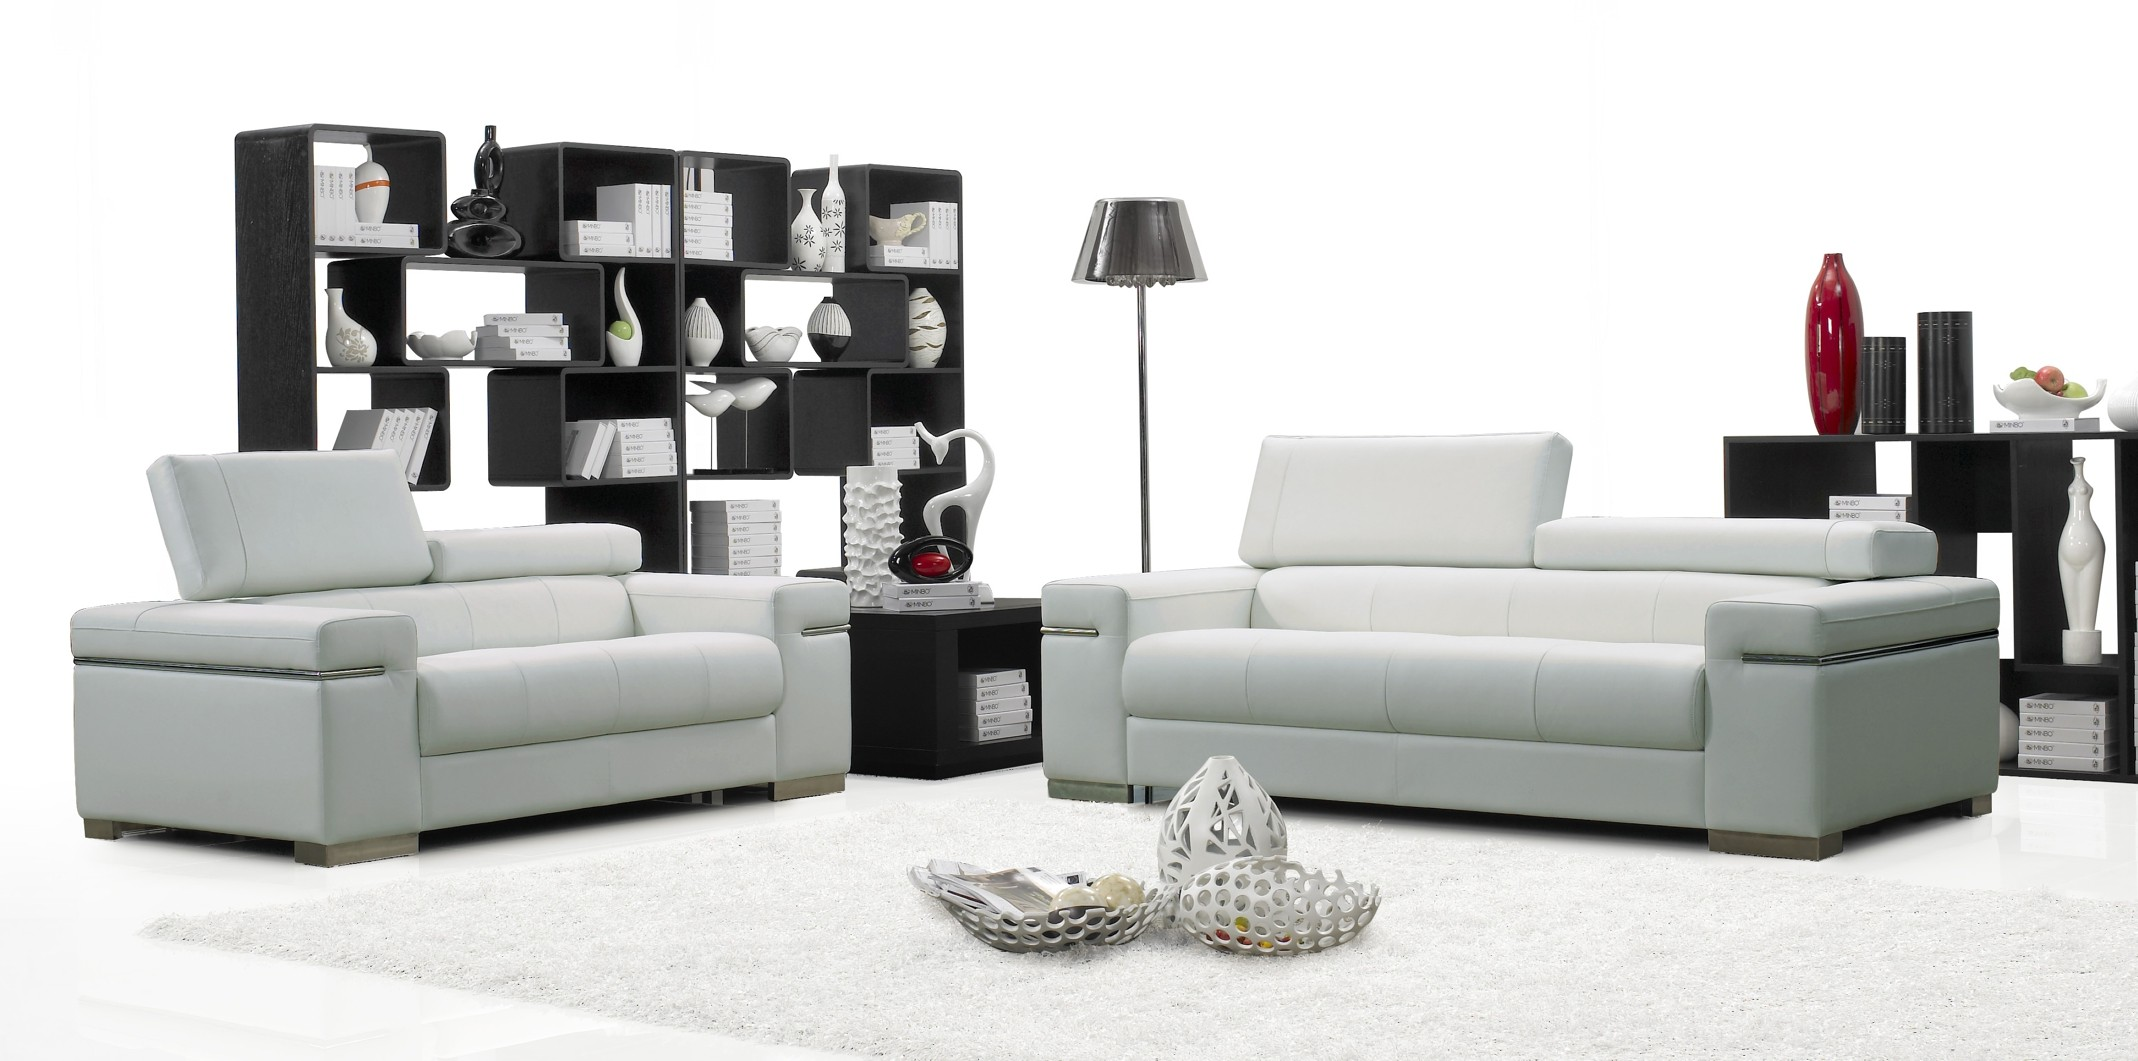 modern white sofas with headrest white area rug large black shelving unitfor books and decorative. true modern furniture online  homesfeed